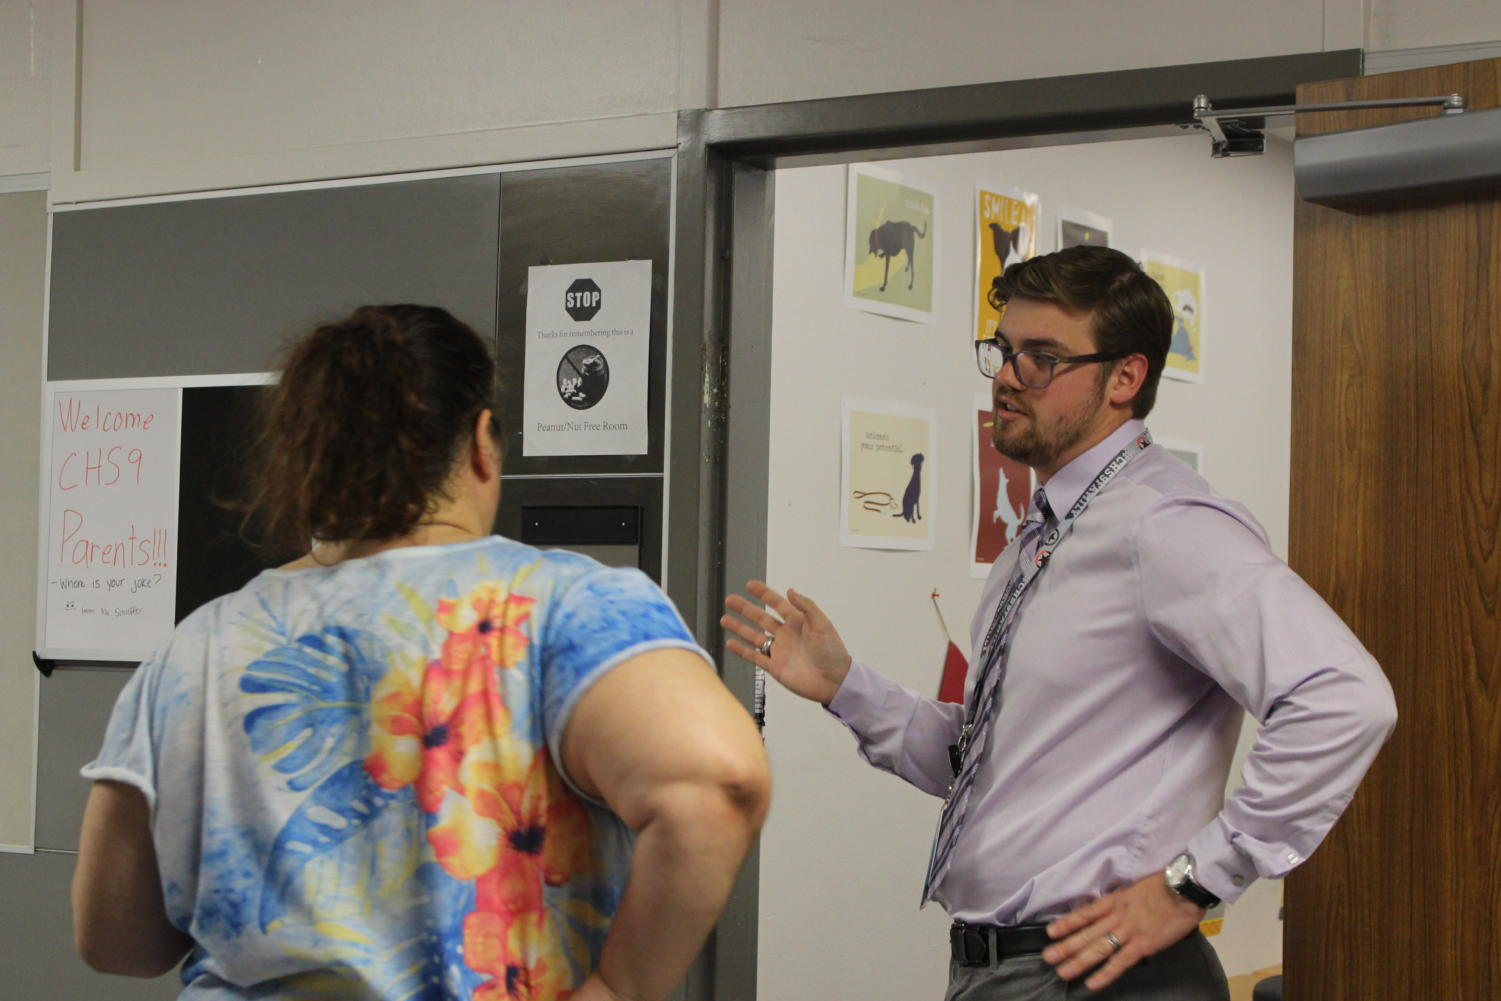 English+teacher+Christopher+Arney+discusses+The+Alchemist%2C+a+novel+students+read+for+his+class%2C+with+a+parent.+CHS9+Curriculum+Night+took+place+on+Tuesday+from+6-8+p.m.